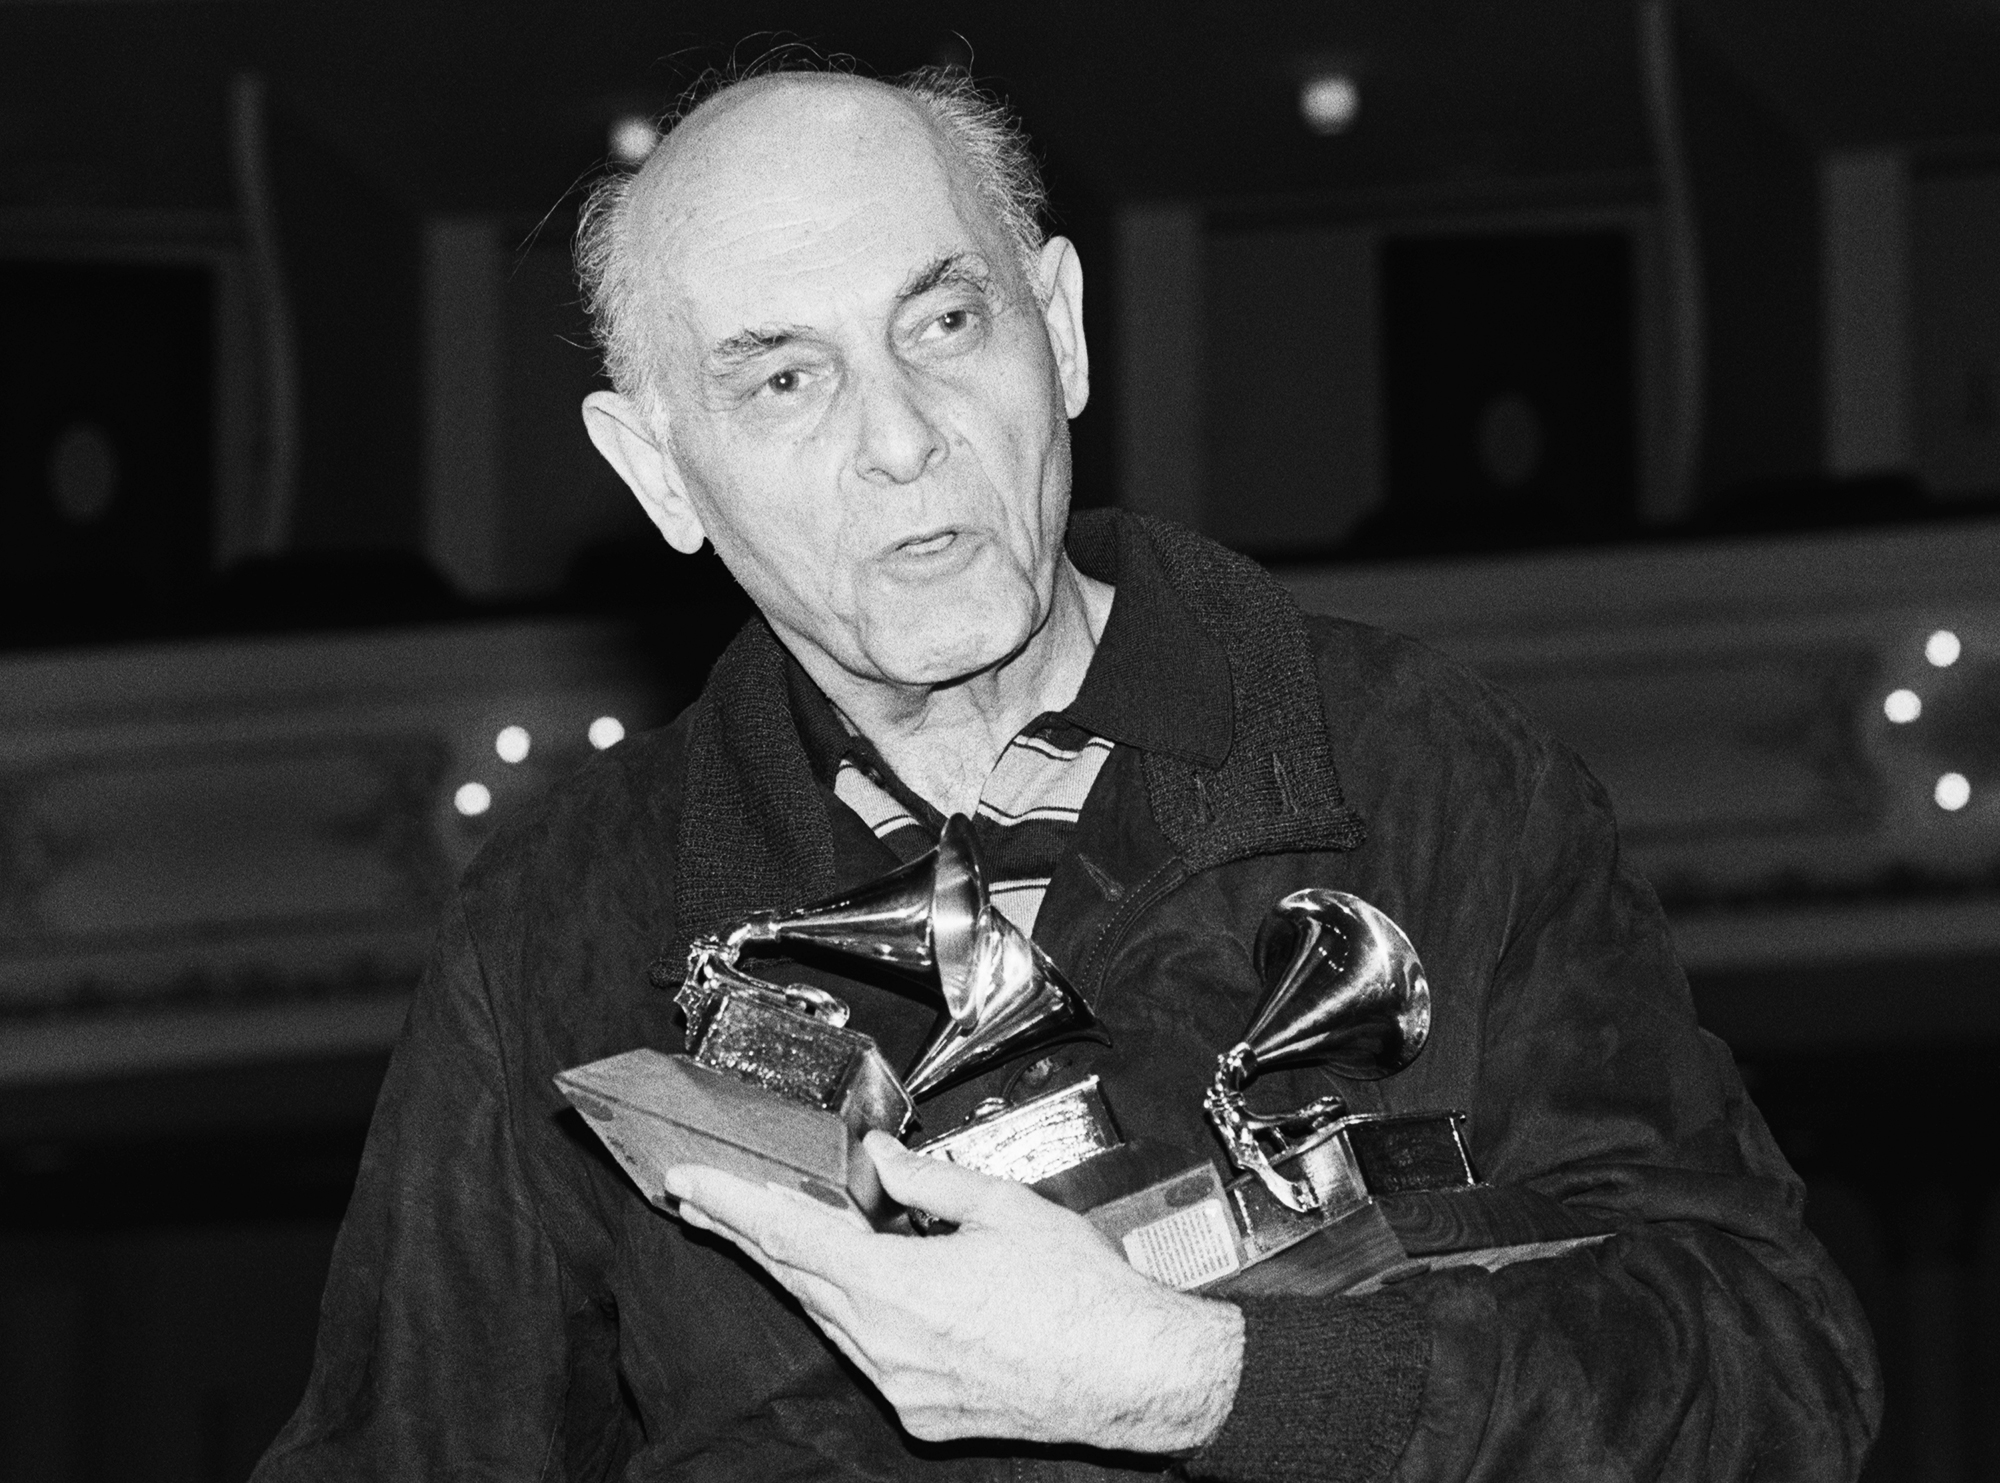 Sir-Georg-Solti-grammy-awards - Late orchestral conductor and Chicago Symphony Orchestra musical director Georg Solti won a record 31 Grammys in his 84 years.